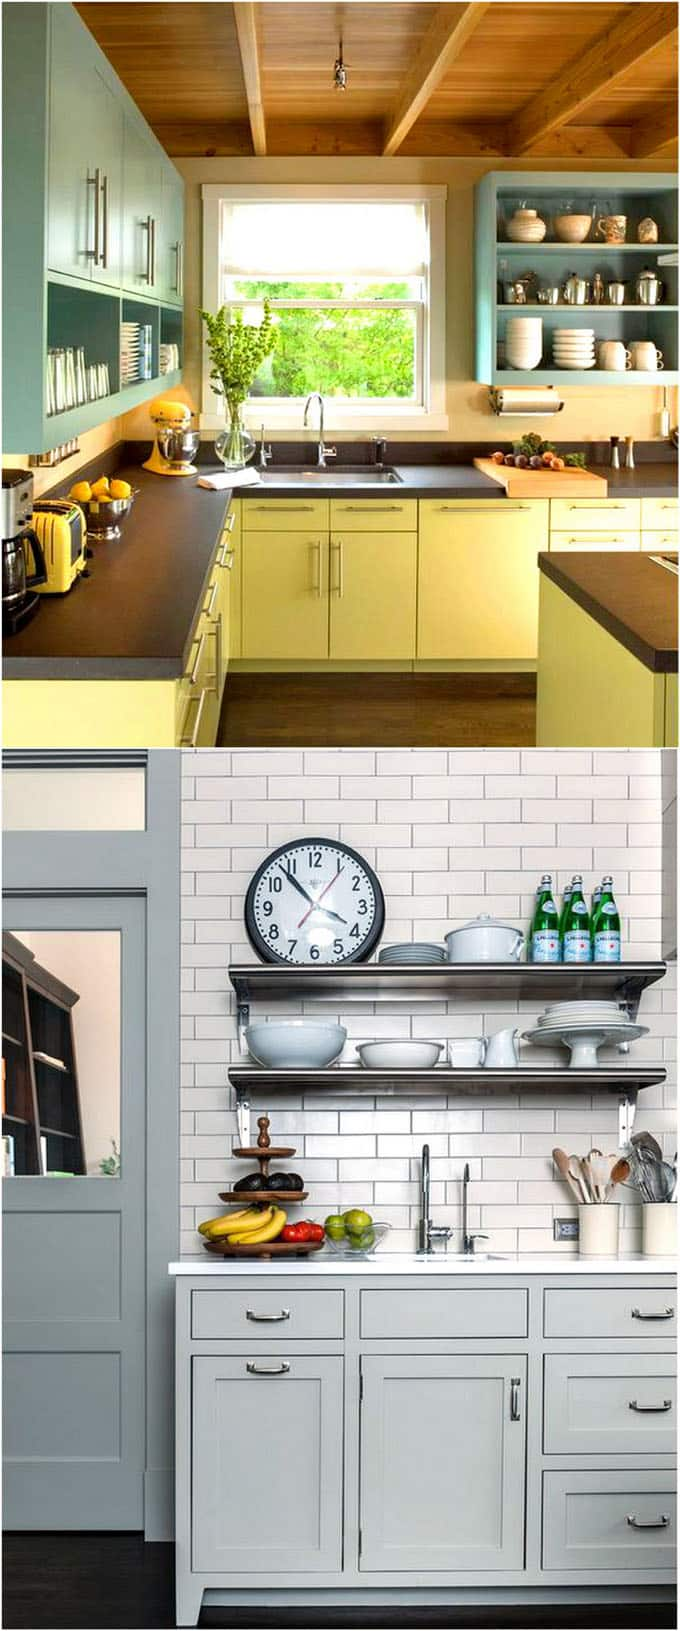 25-beautiful-paint-colors-for-kitchen-cabinets-apieceofrainbowblog (11)